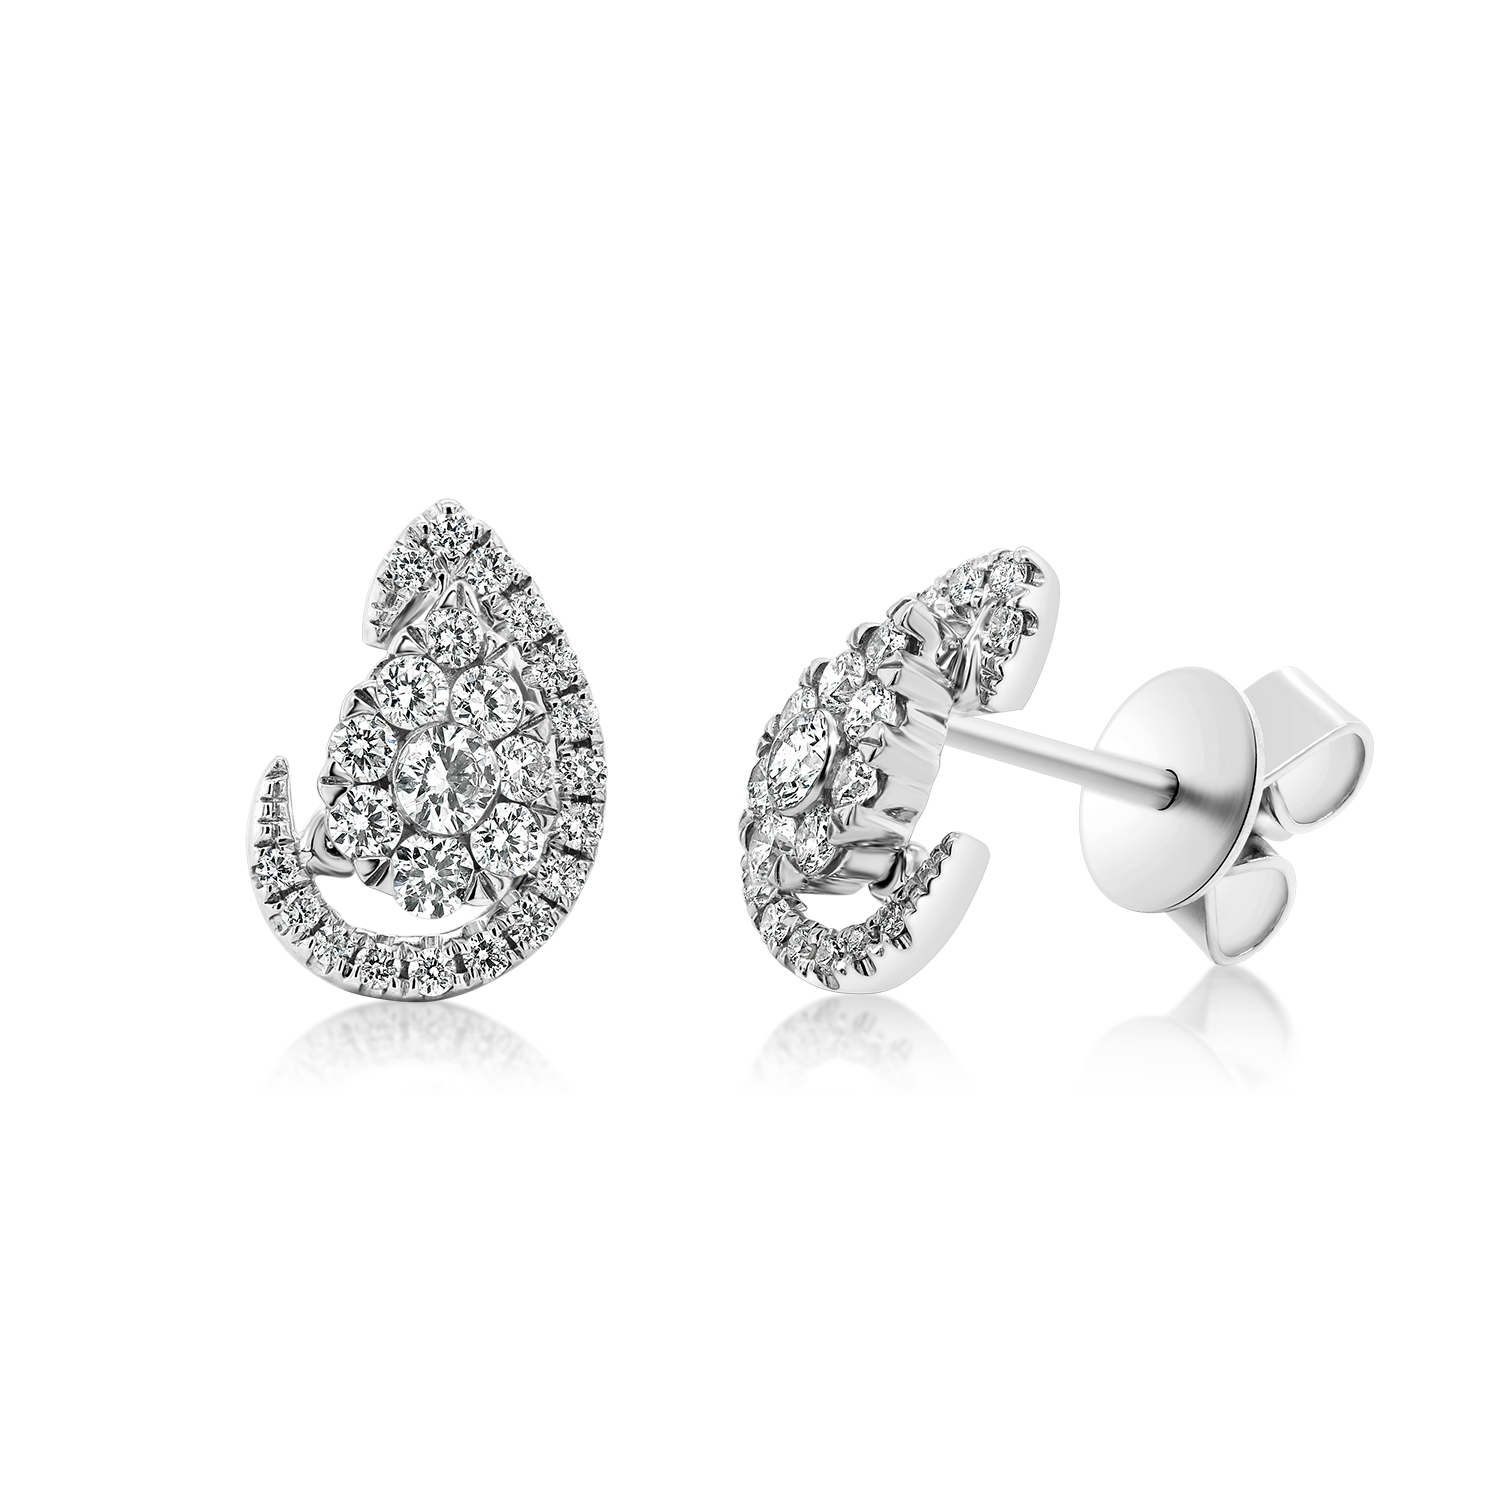 Diamond Earrings Diamond earrings White